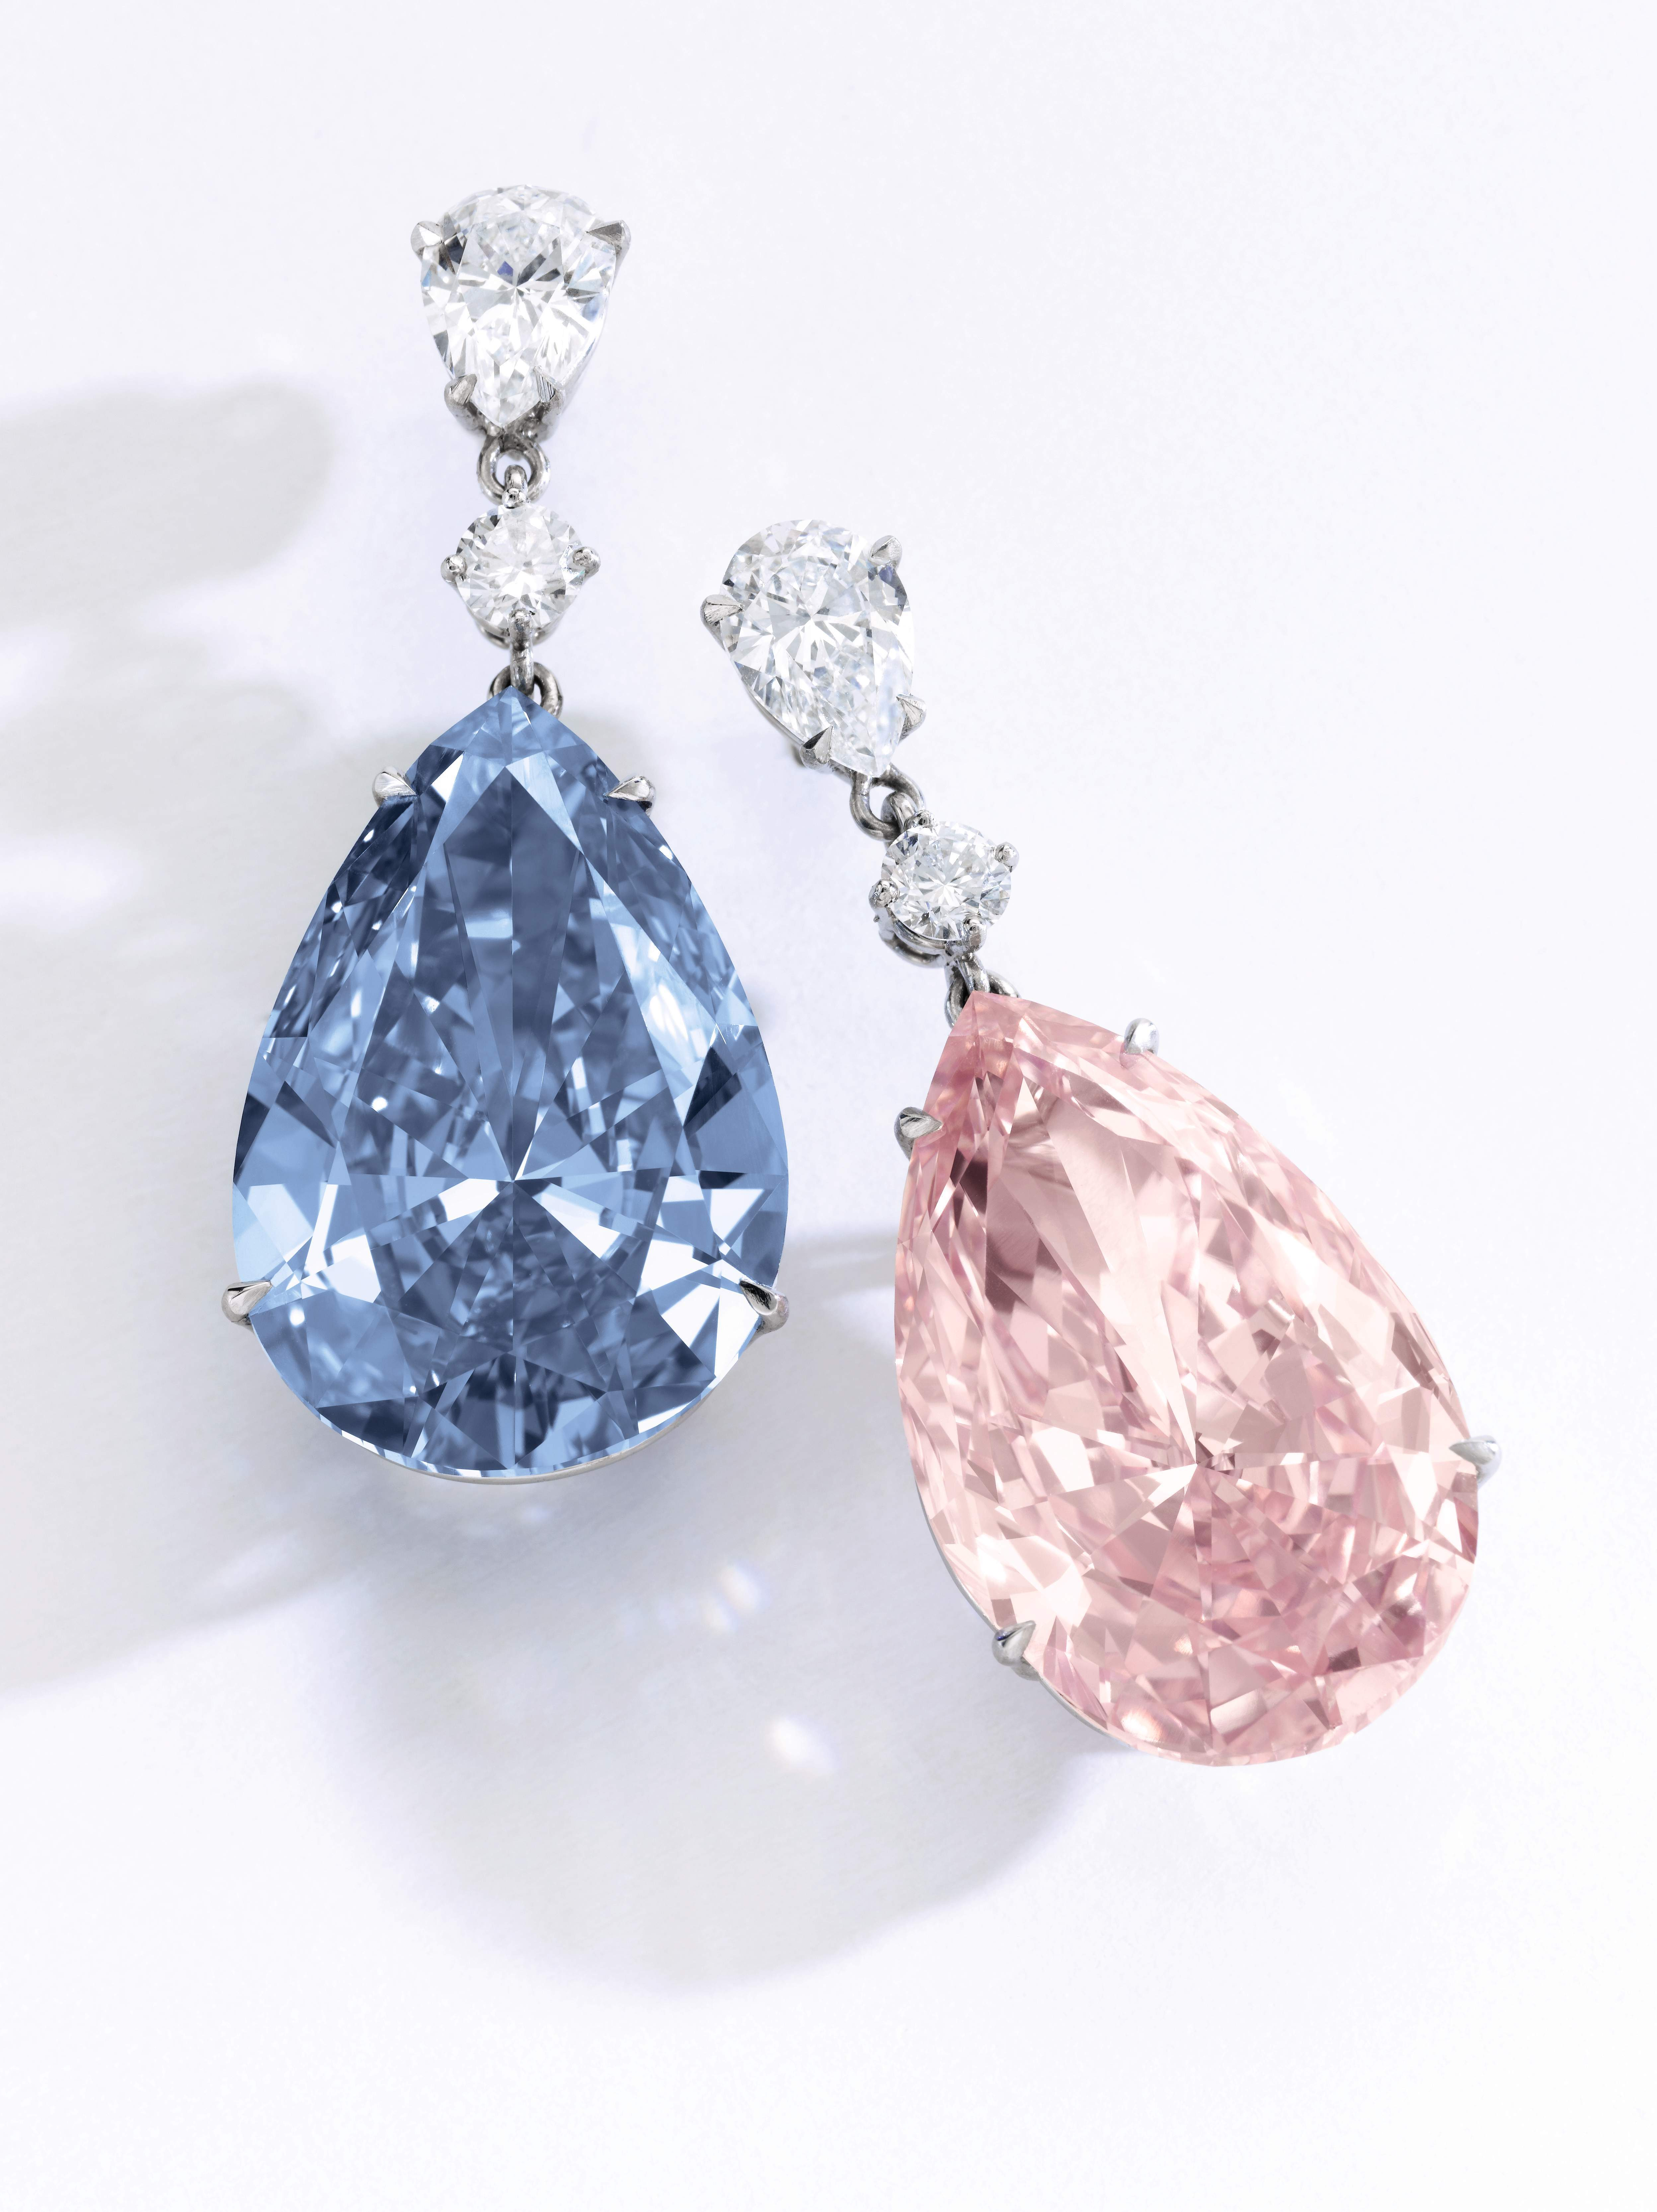 'THE APOLLO BLUE', Fancy Vivid Blue, 14.54 carats, Internally Flawless, Type IIb 'THE ARTEMIS PINK', Fancy Intense Pink, 16.00 carats, VVS2 clarity, Type IIa